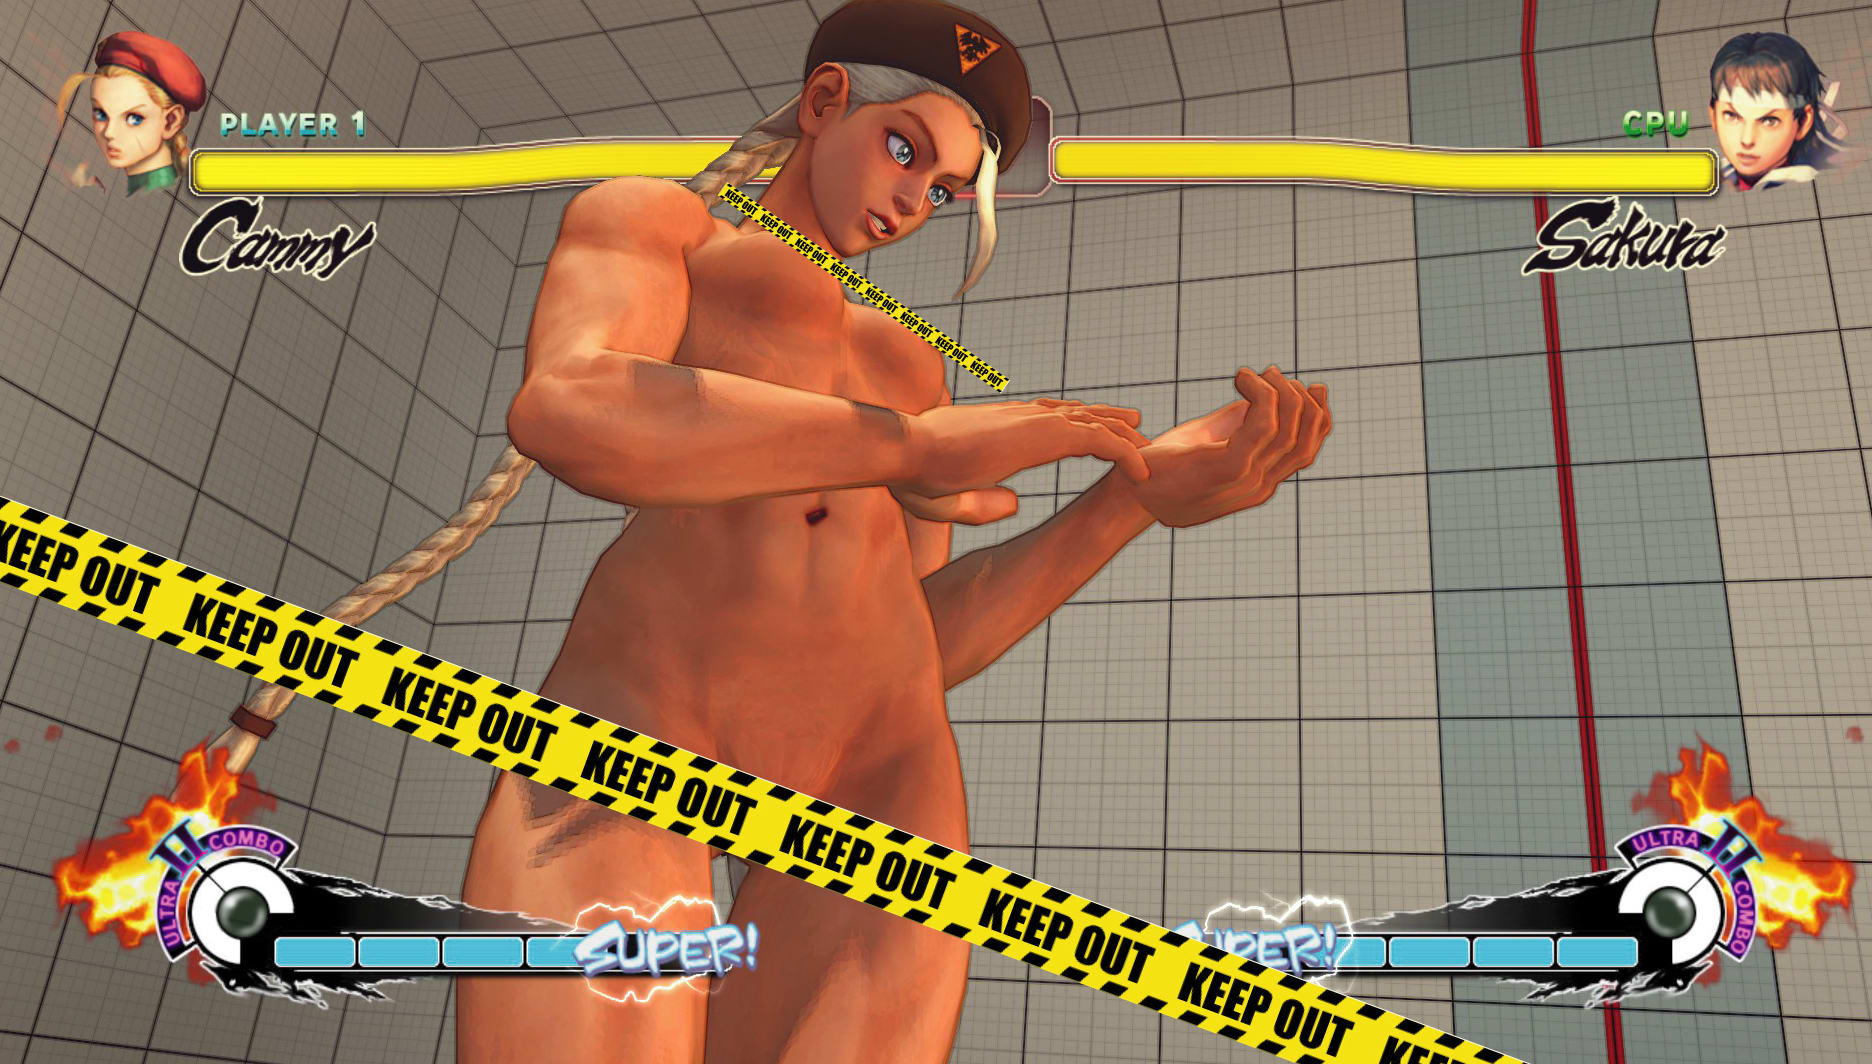 Super street fighter 4 nude mod nudes movie